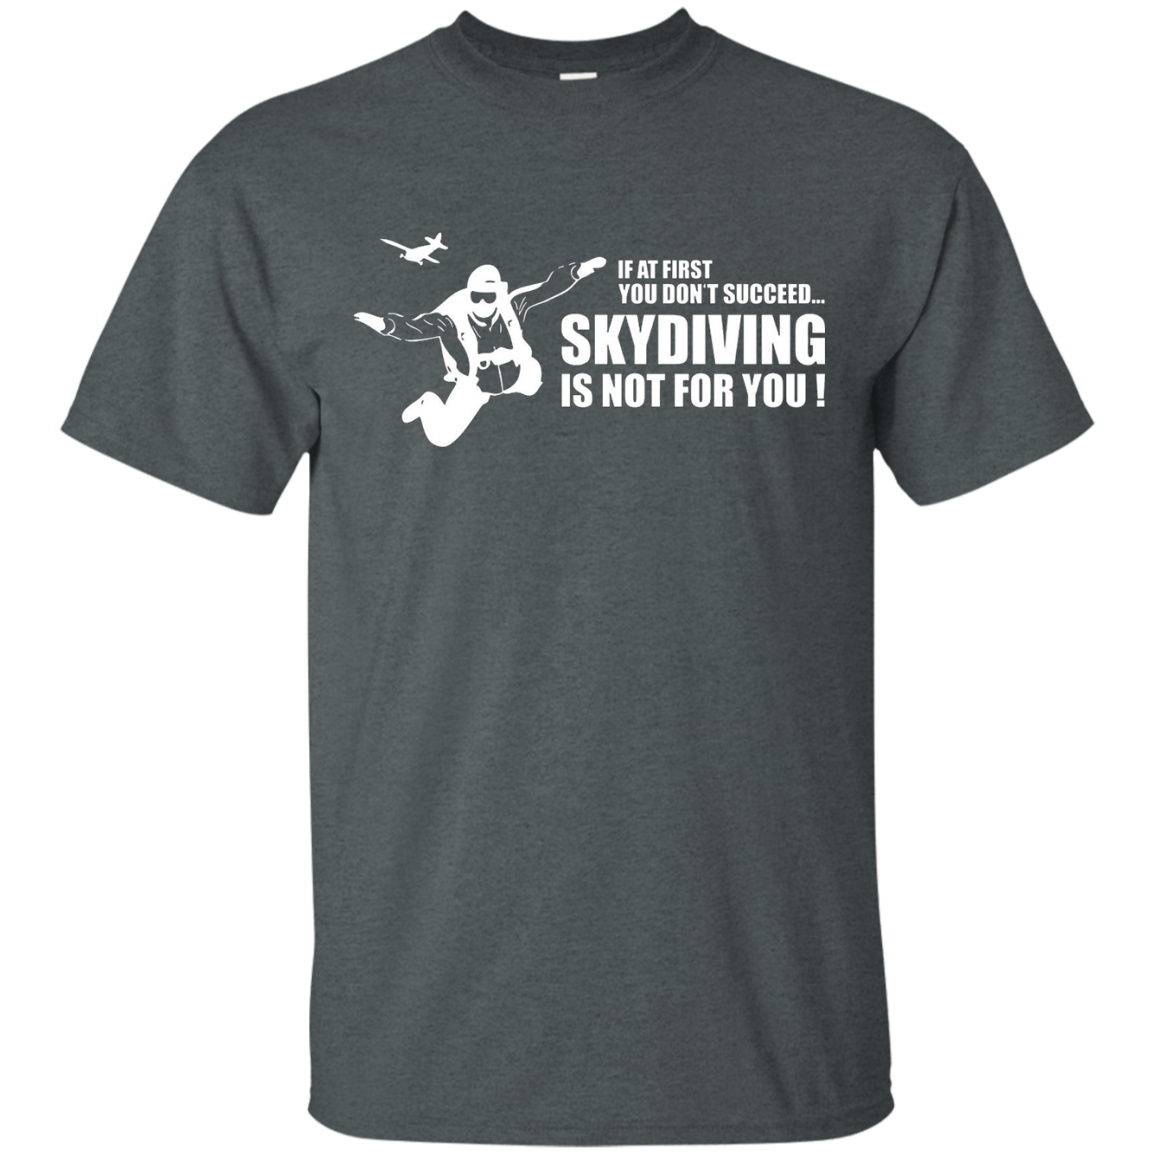 Skydiving T-Shirt - If At First You Don't Succeed